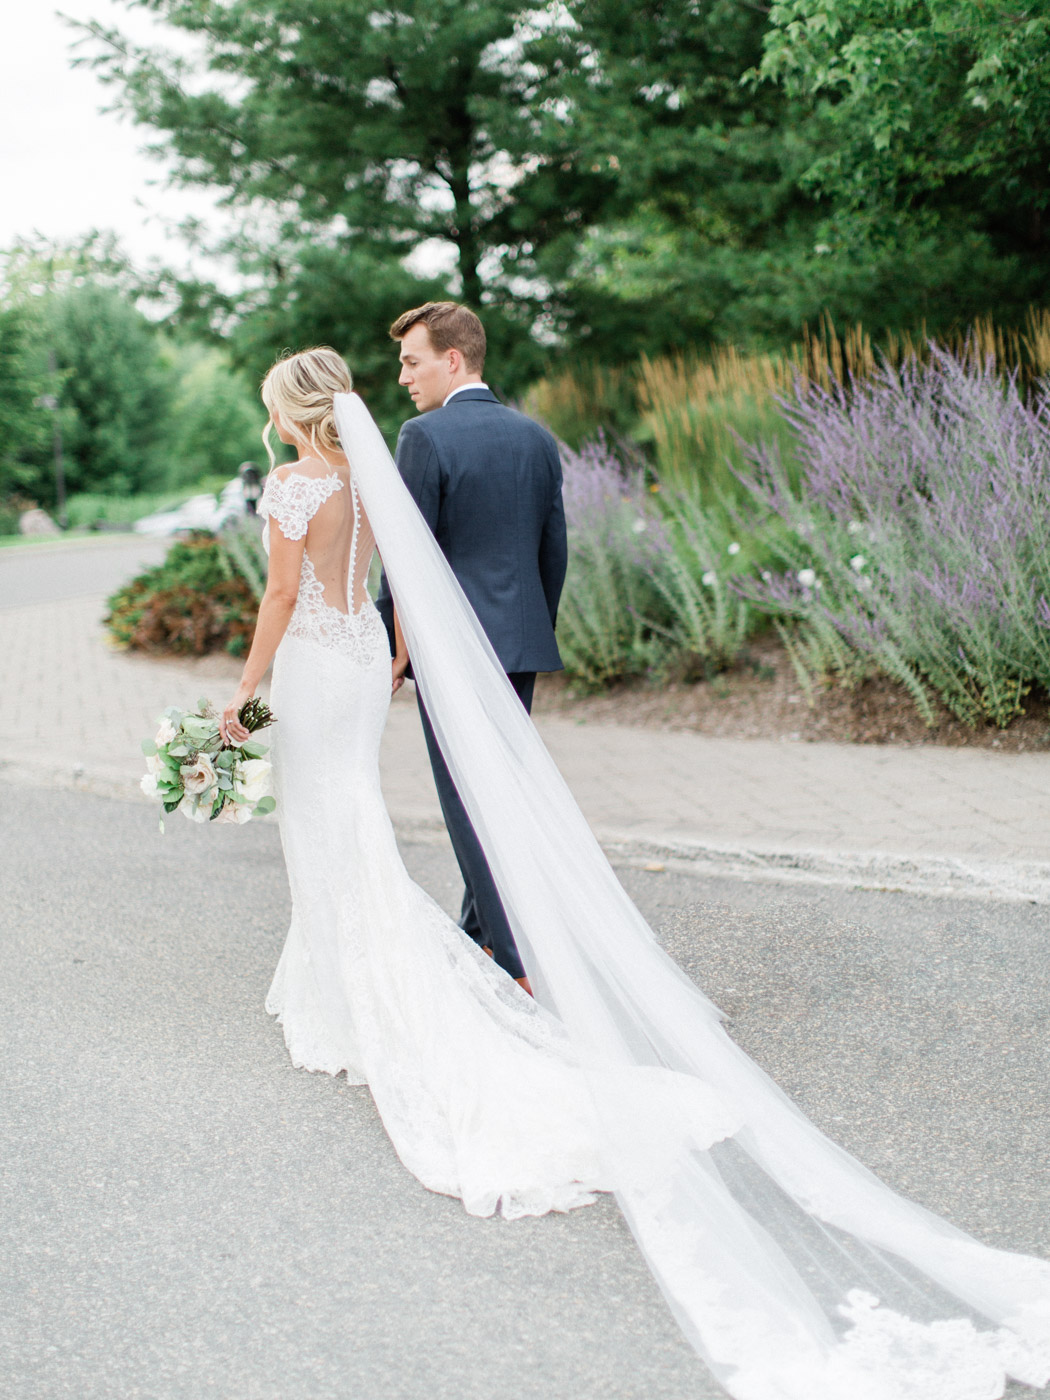 Classic candid portrait of  bride and groom at outdoor summer Muskoka wedding.  Captured at the J.W. Marriott Rosseau by wedding photographer Corynn Fowler Photography.